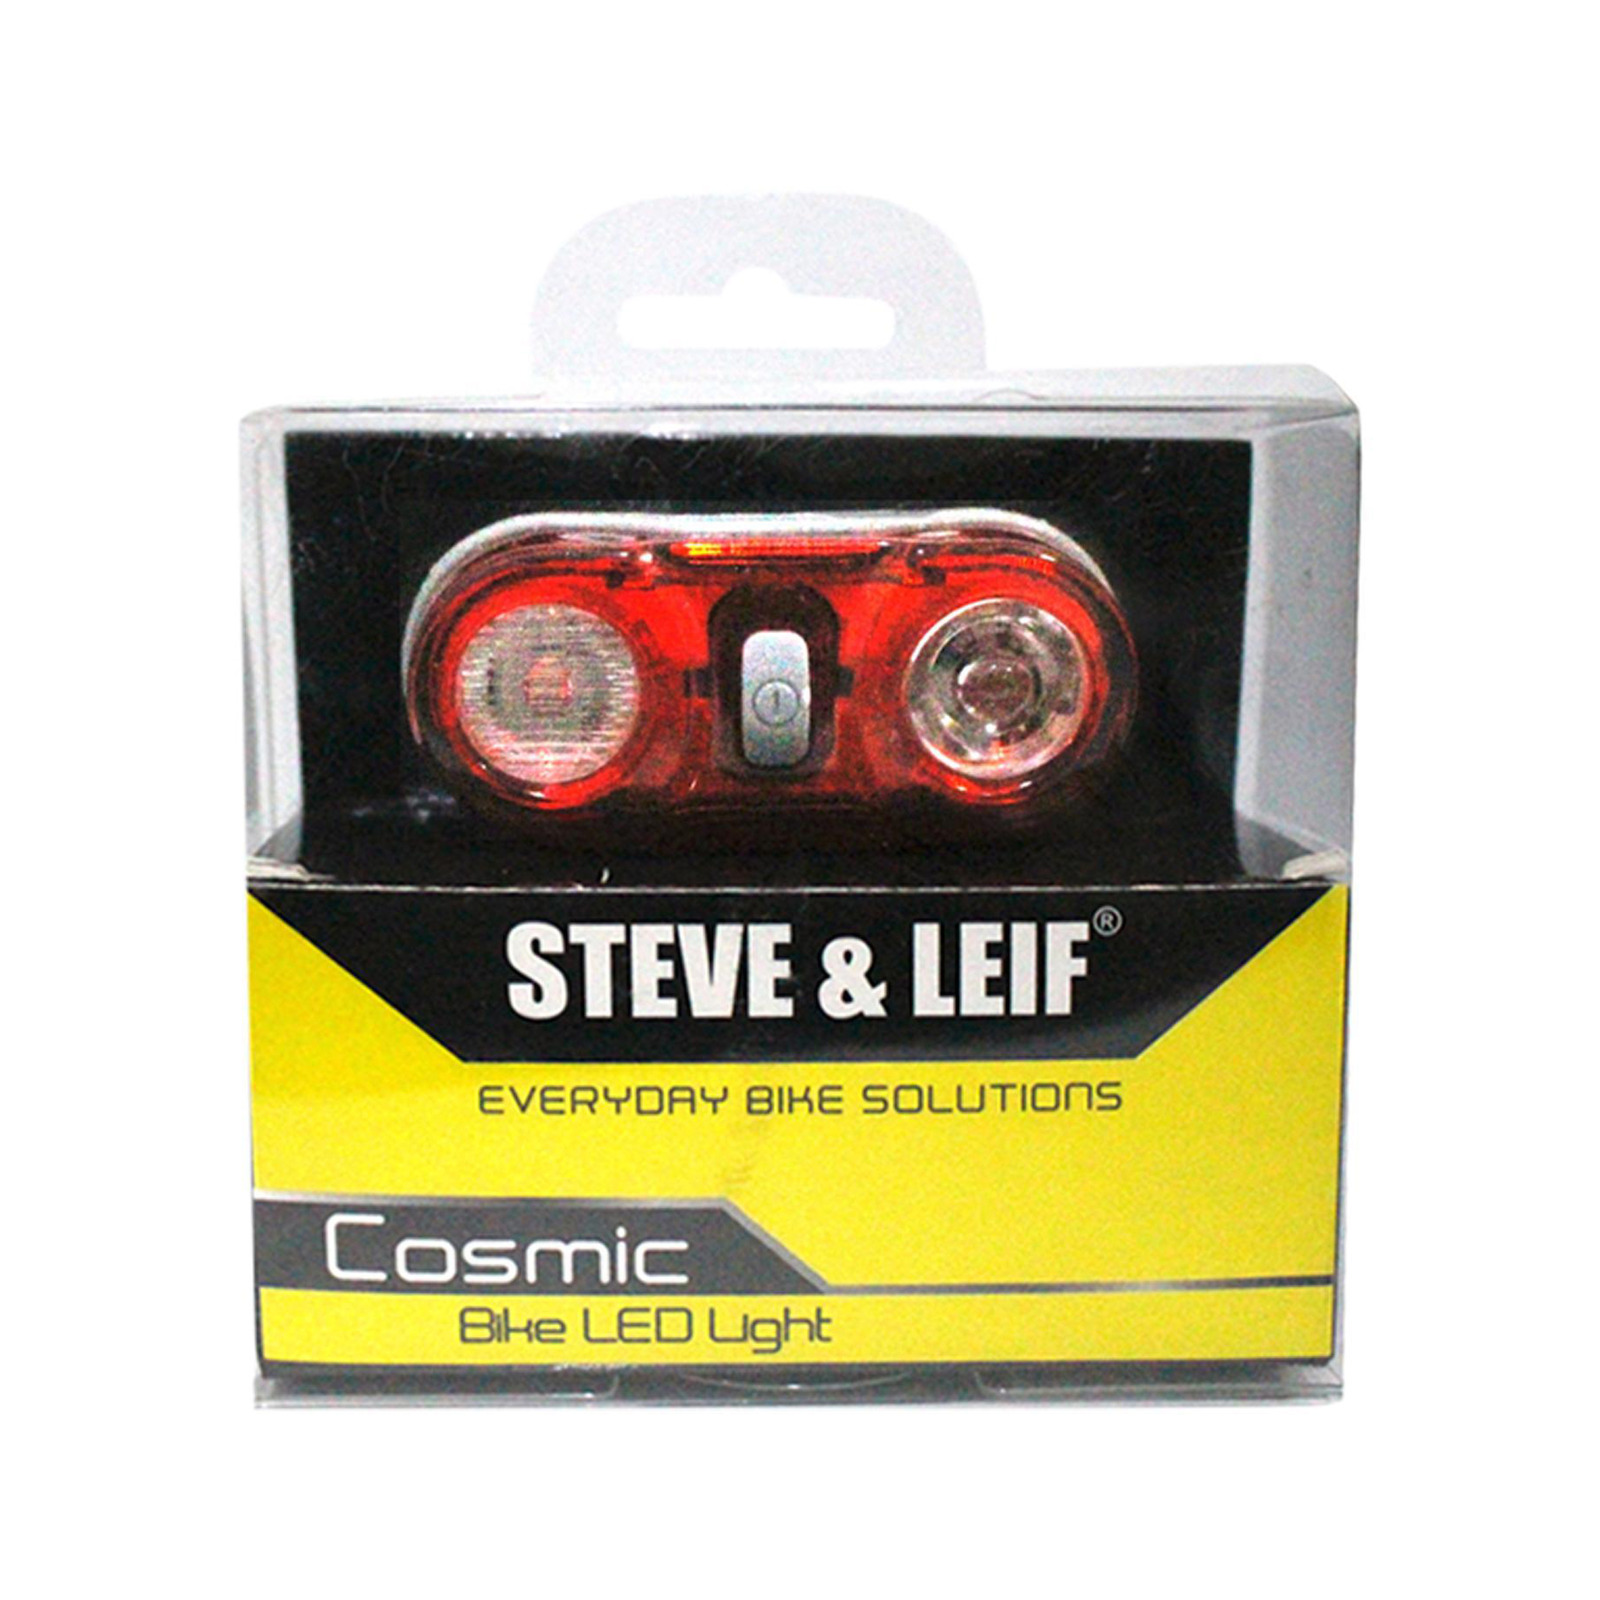 Steve & Leif Cosmic 0.5 Watt LED Red Bicycle TorcH